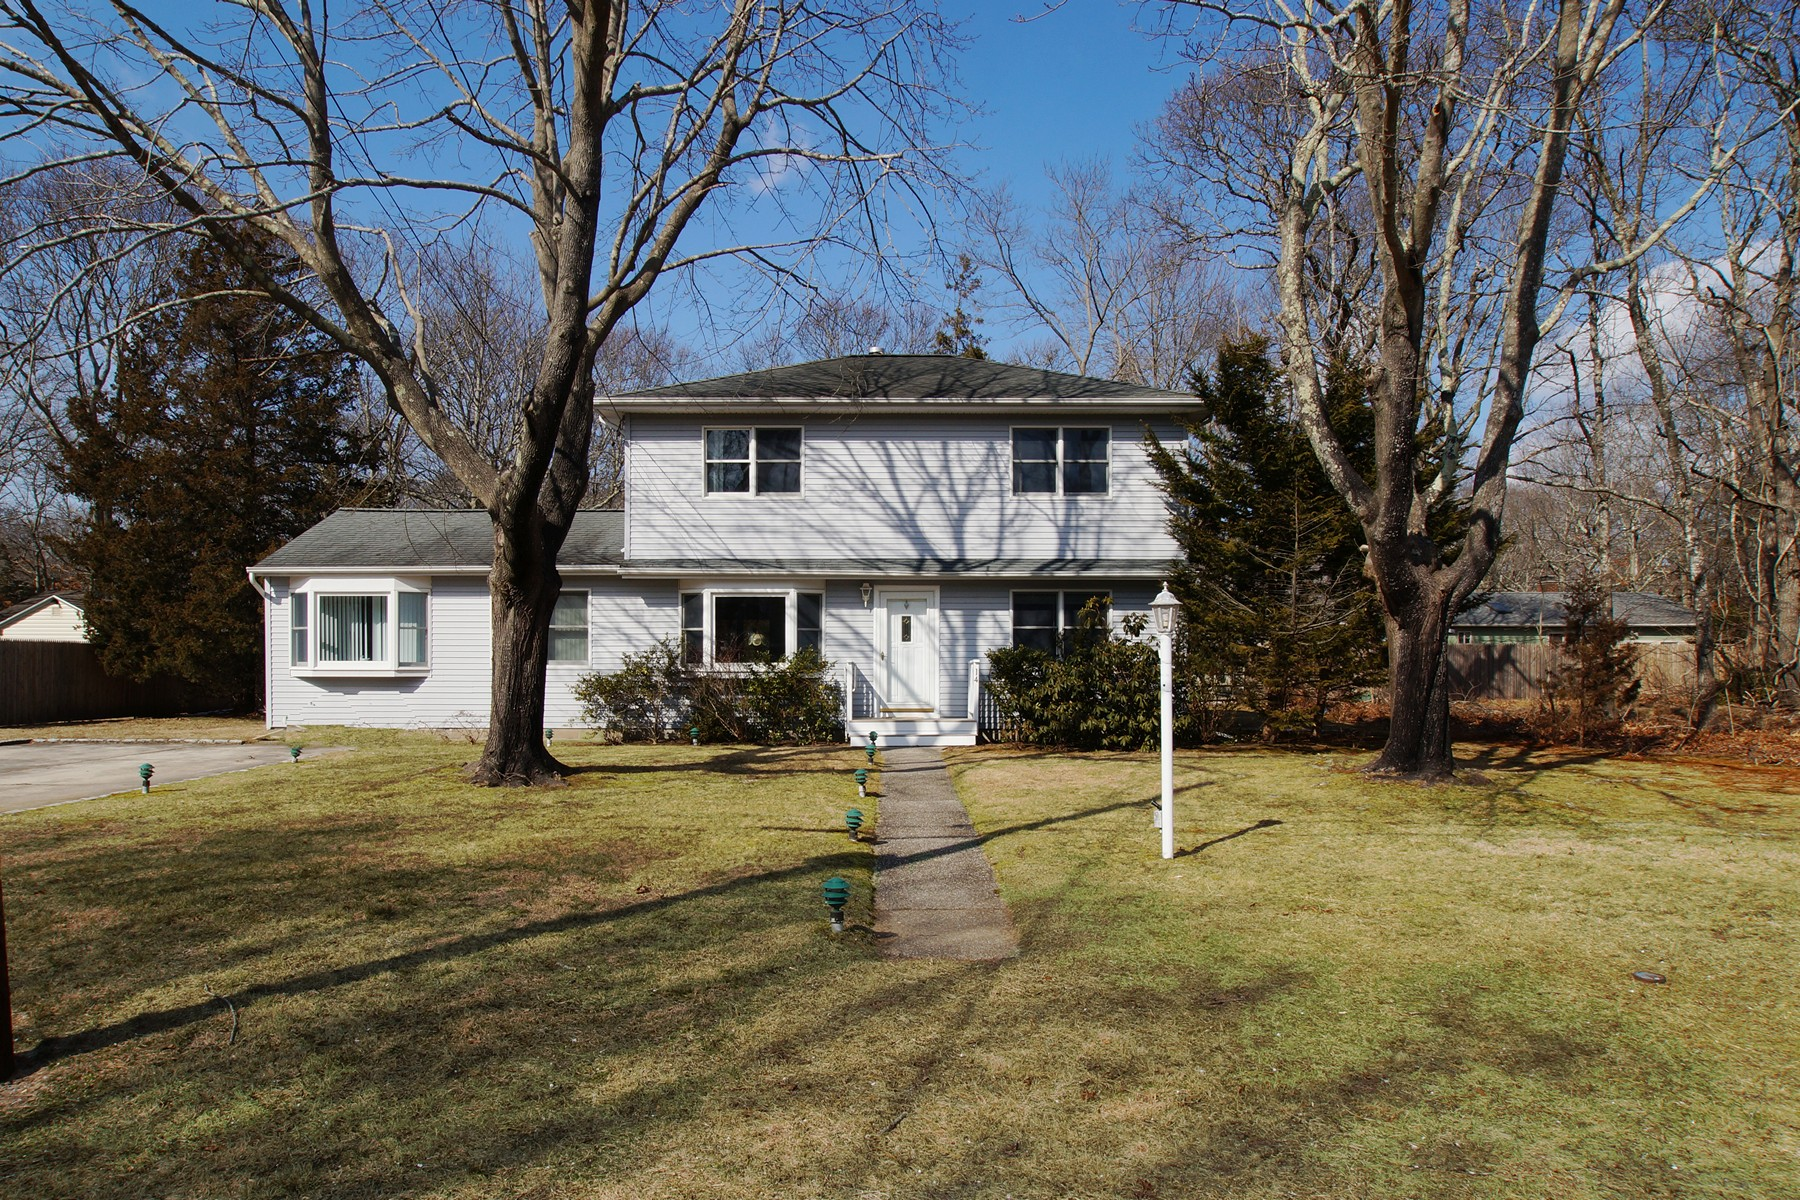 Single Family Home for Active at Hampton Bays 14 Chevy Chase Rd Hampton Bays, New York 11946 United States